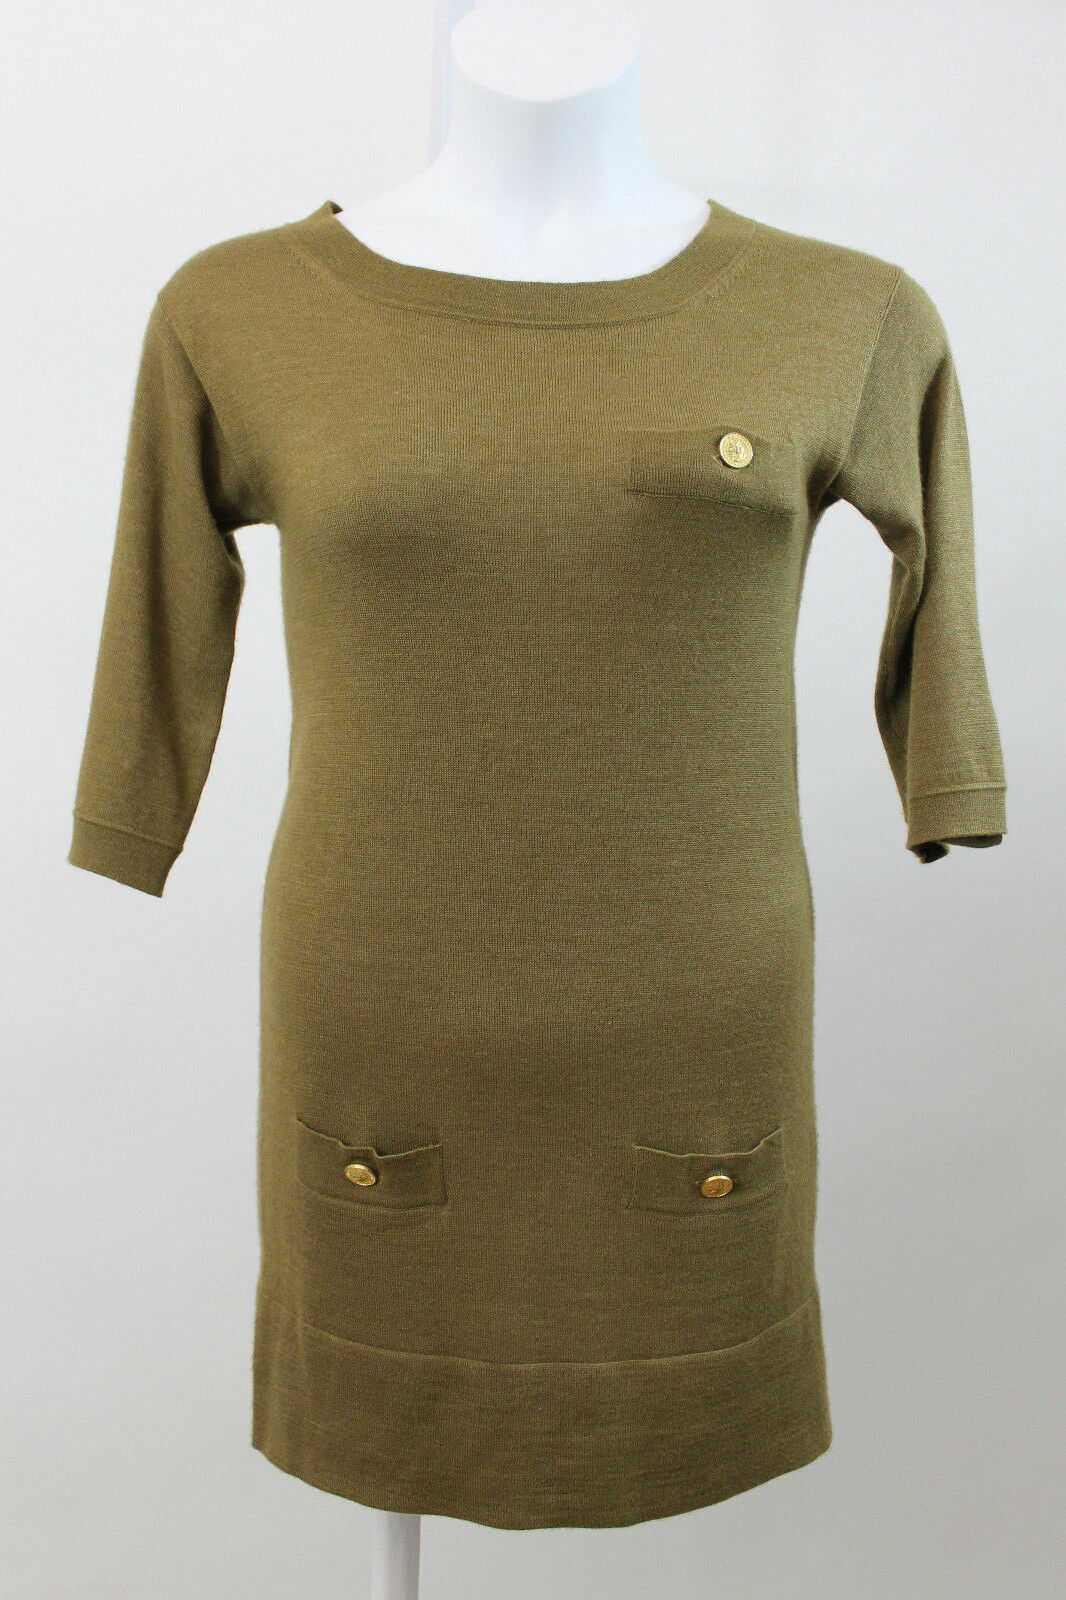 Chloe Bronze Cashmere & Silk Blend Blend Blend Knit Sweater Dress XS  (J12) 5ba071